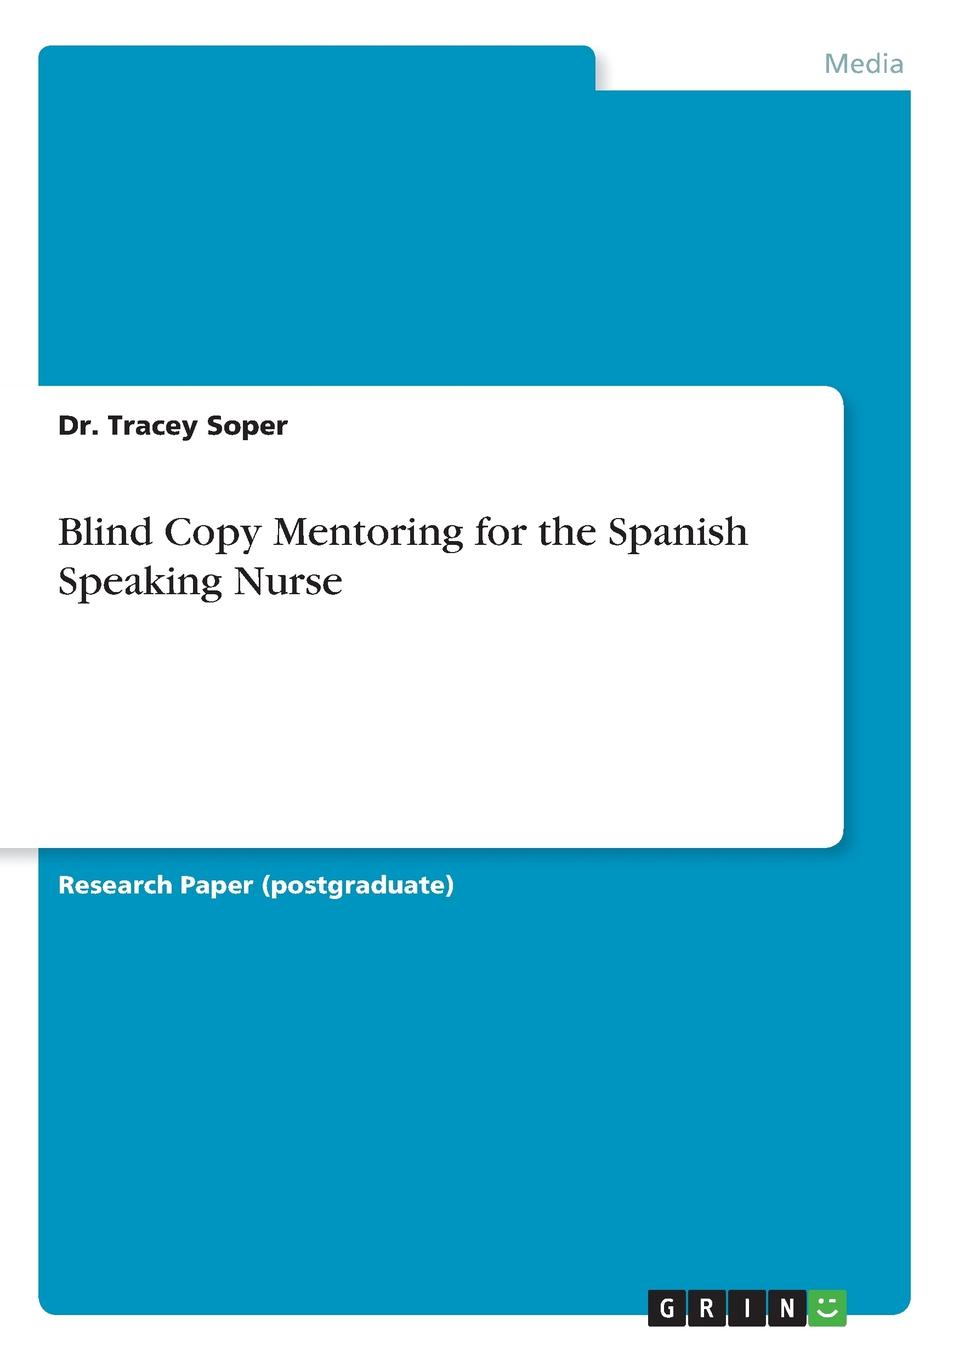 Dr. Tracey Soper Mentoring for the Spanish Speaking Nurse ayres alfred the mentor